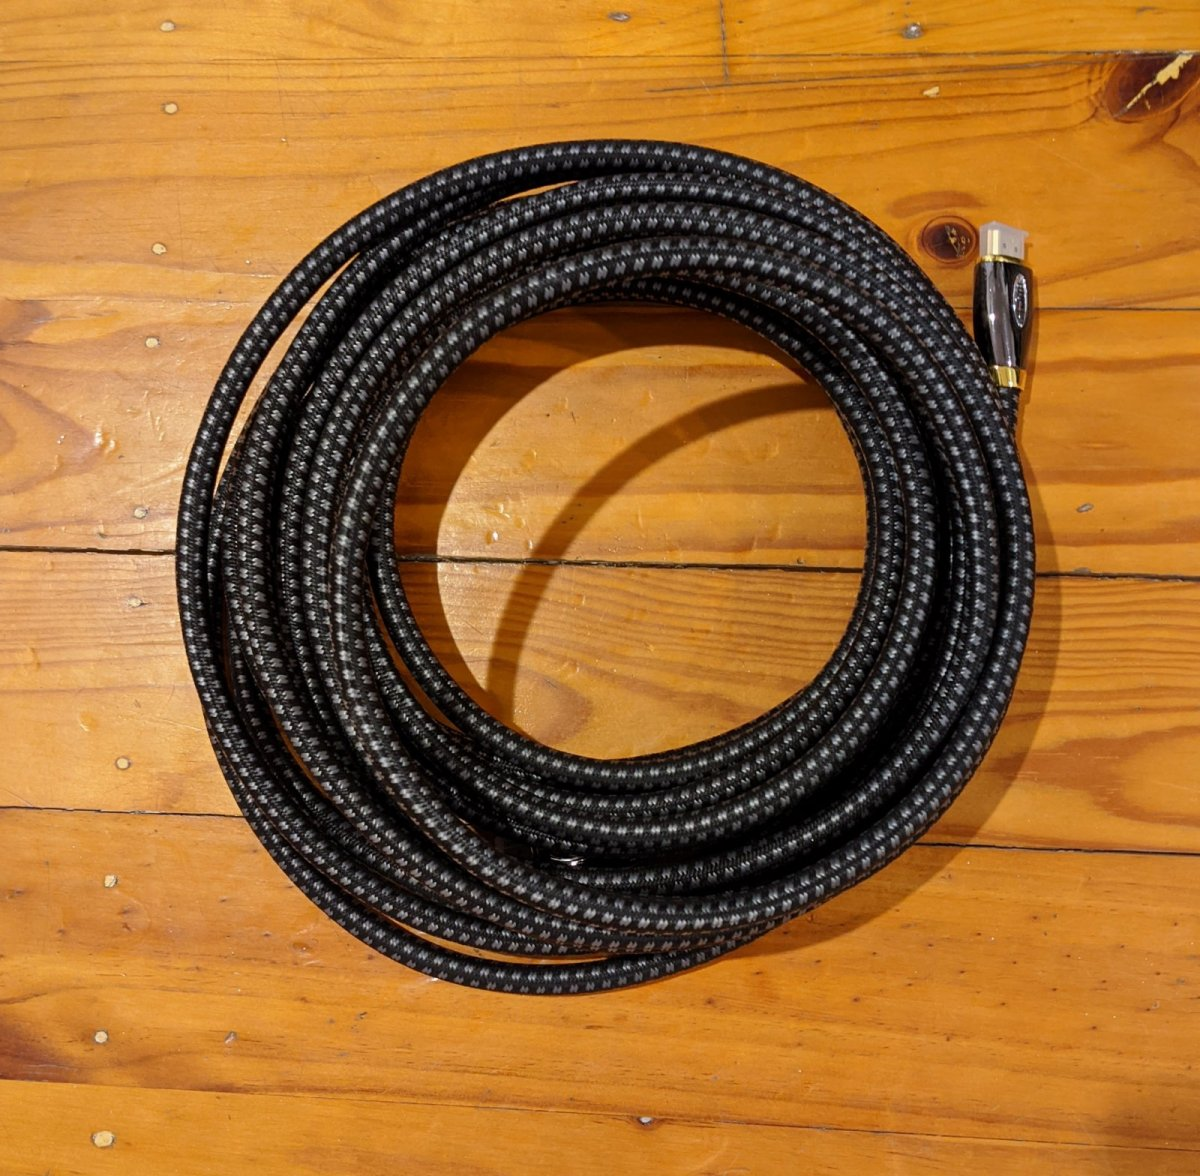 HDMI 10 metre cable.jpg